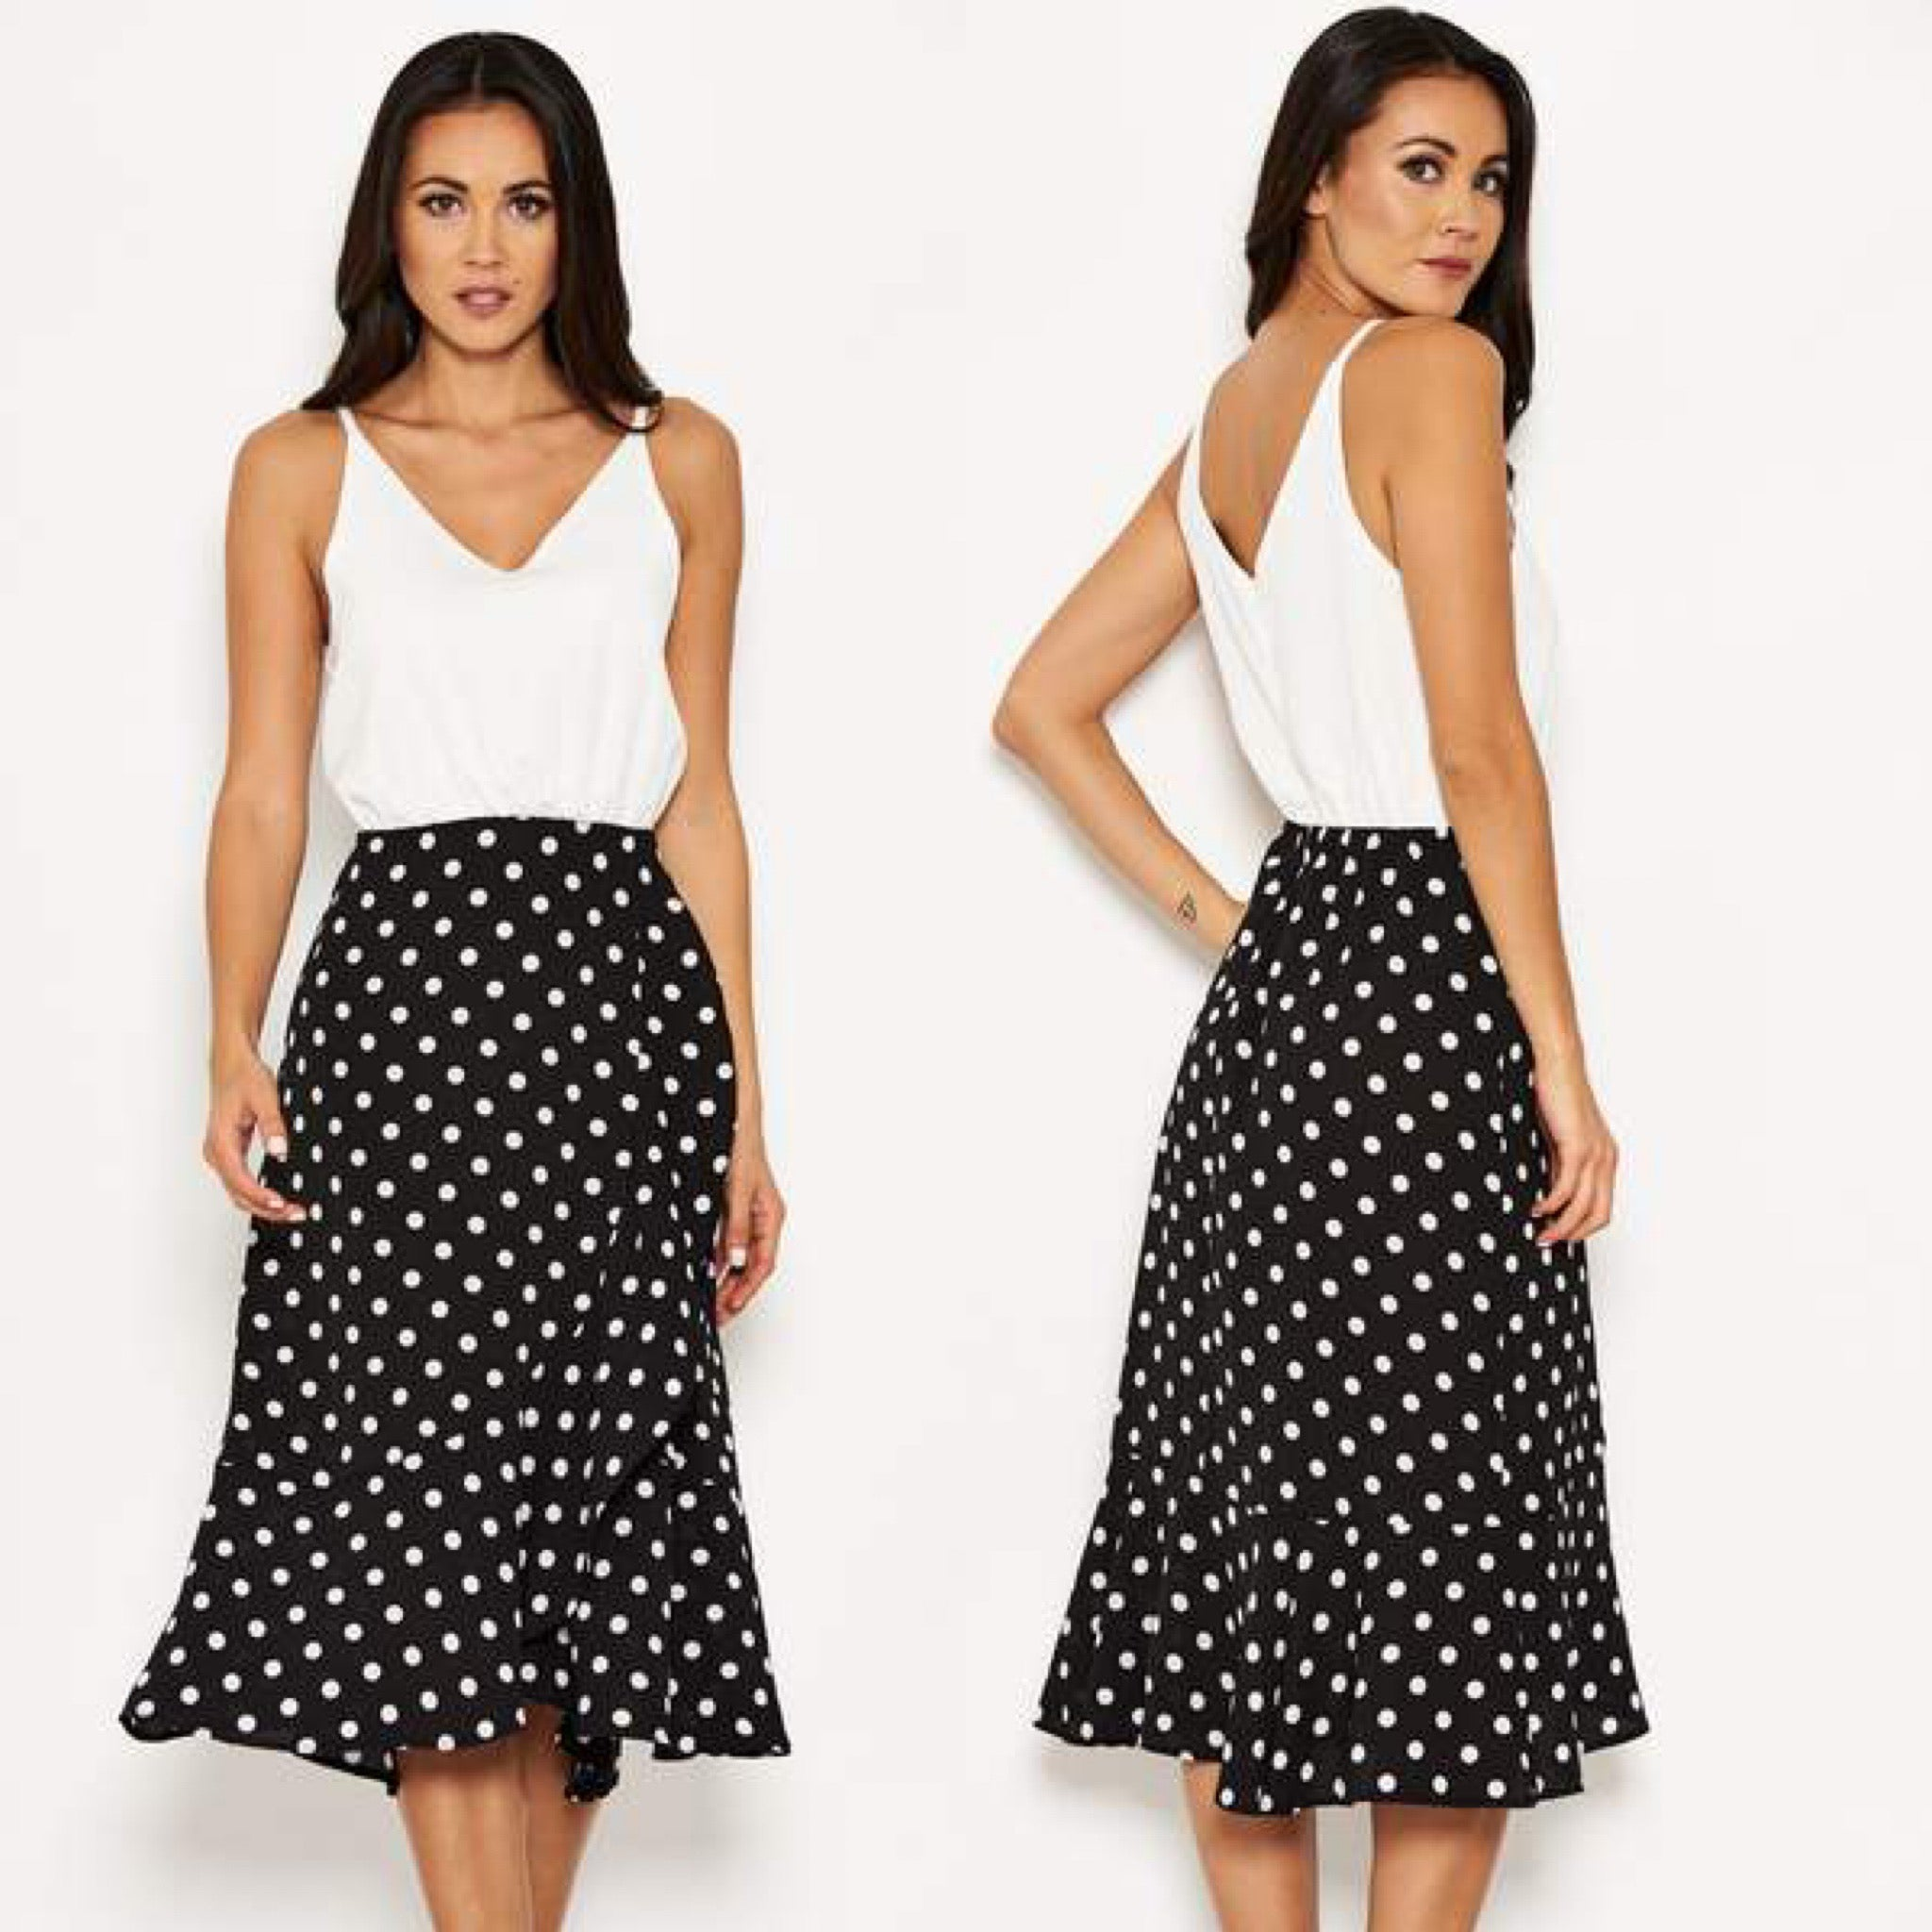 25Ten & Co Boutique Dresses 2 in 1 Polka Dot Cami Dress [product_tags] - 25Ten & Co Boutique